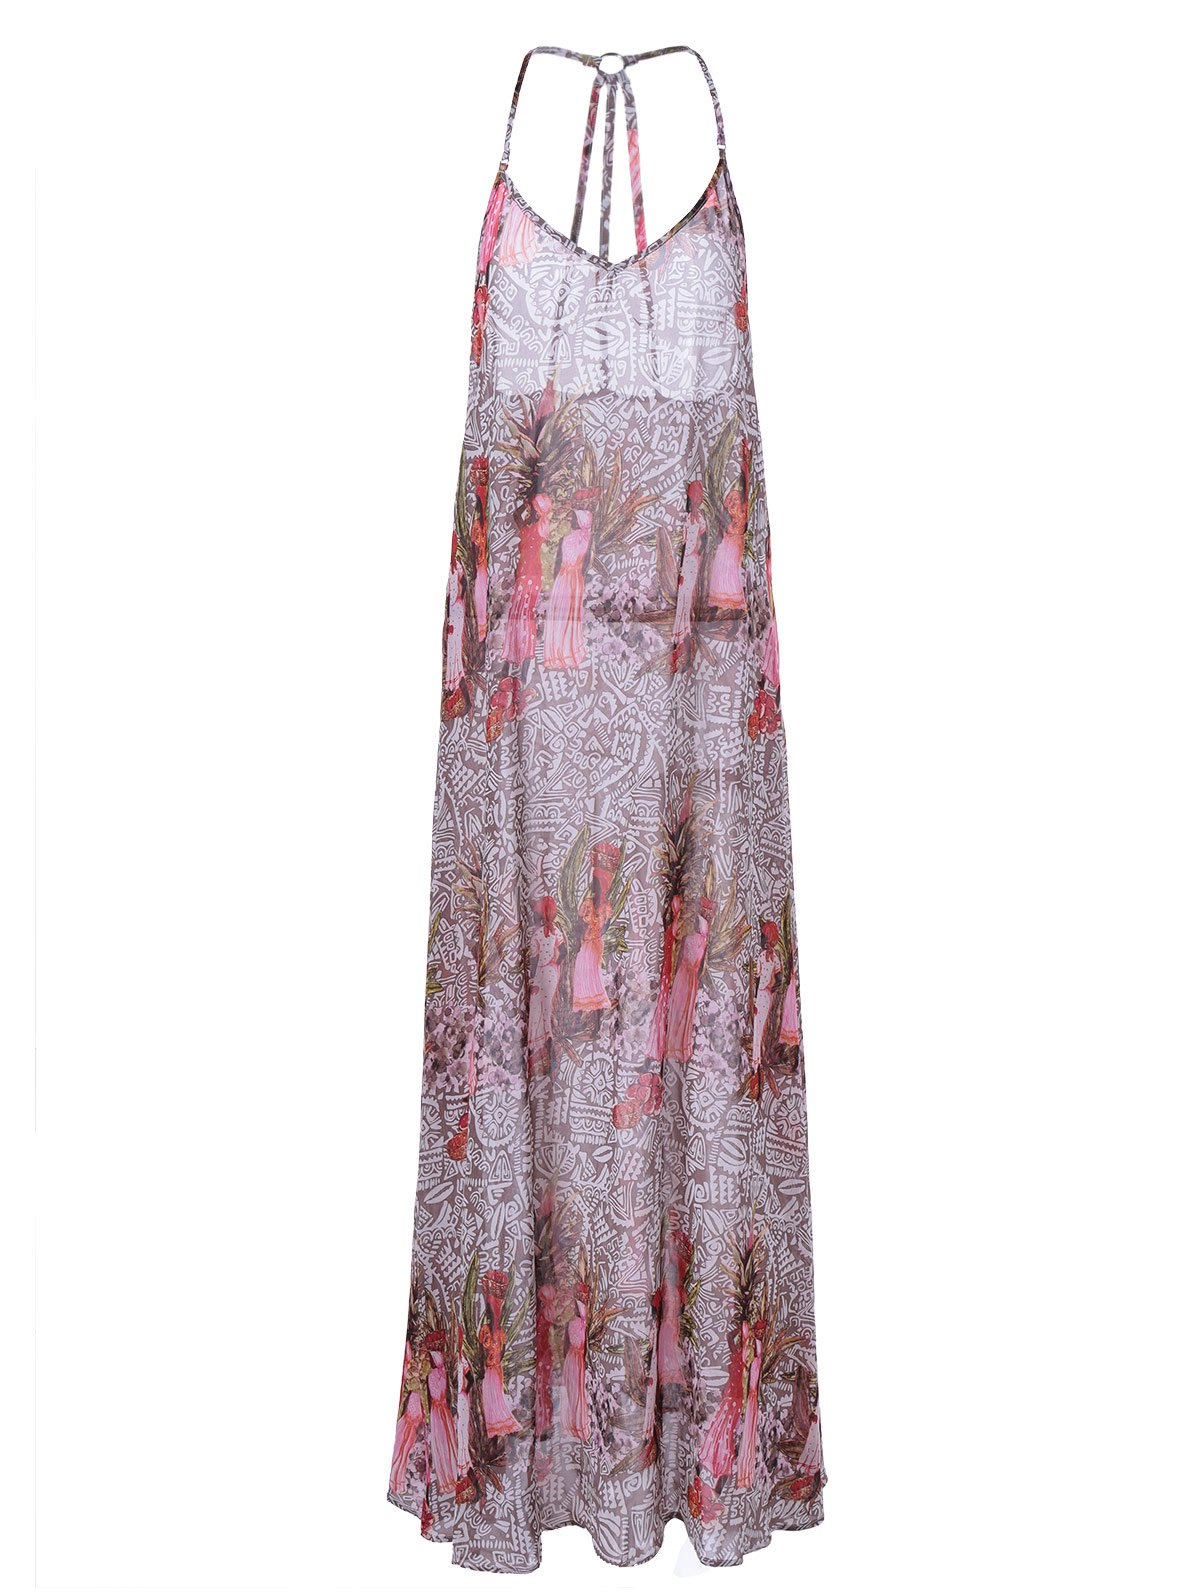 Fashionable Bohemian Pringting Spaghetti Strap Dress For Women - COLORMIX XL